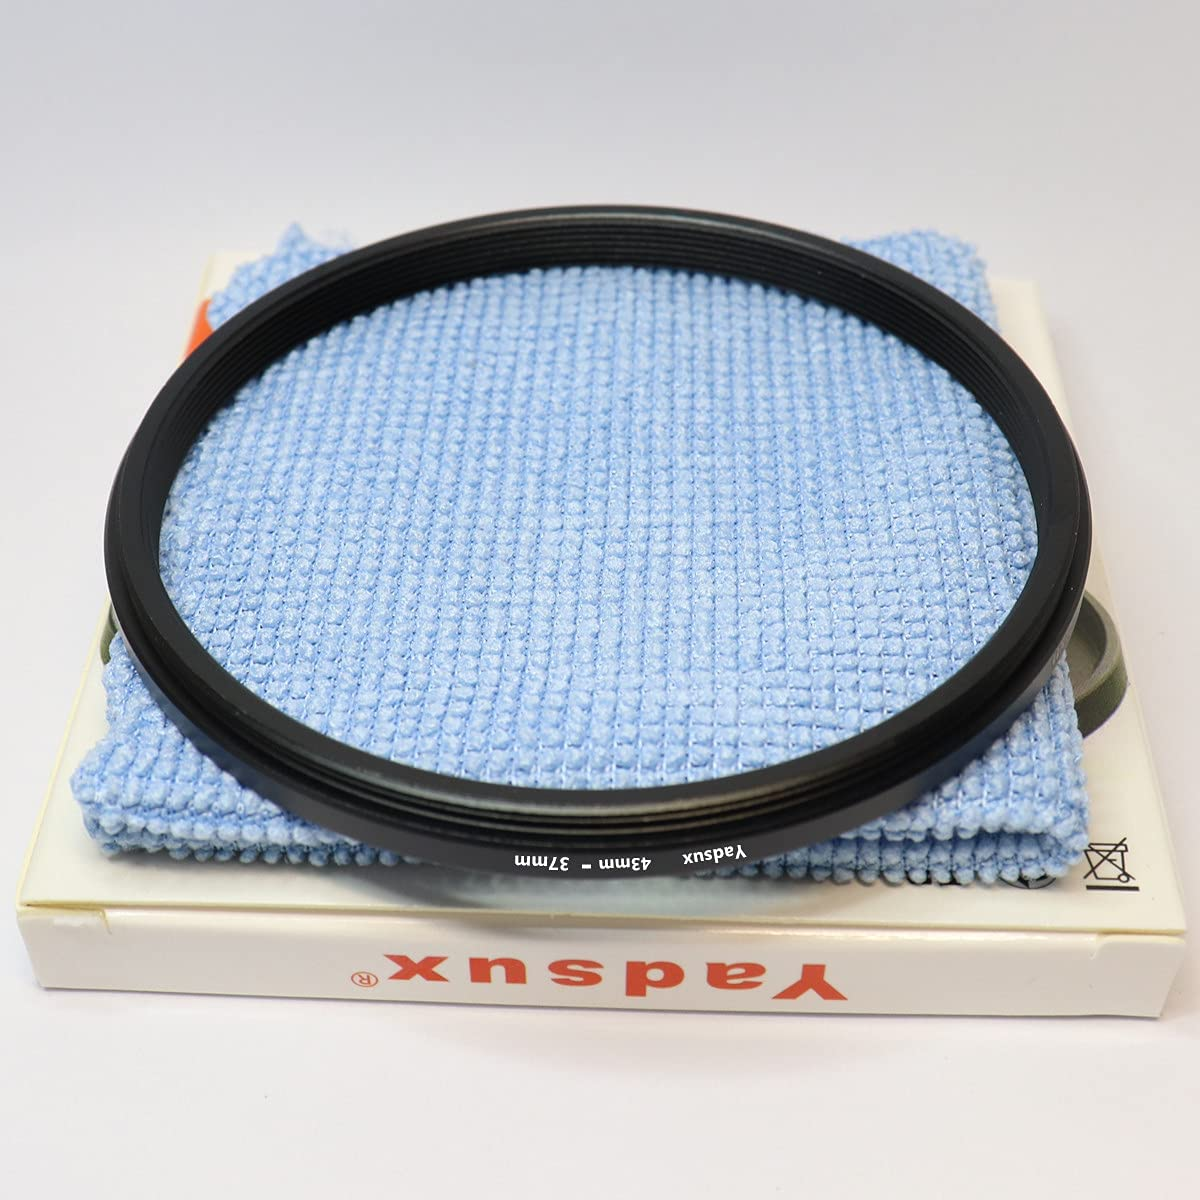 43mm to 37mm Step-Down Lens Adapter Ring for Camera Lenses Filte